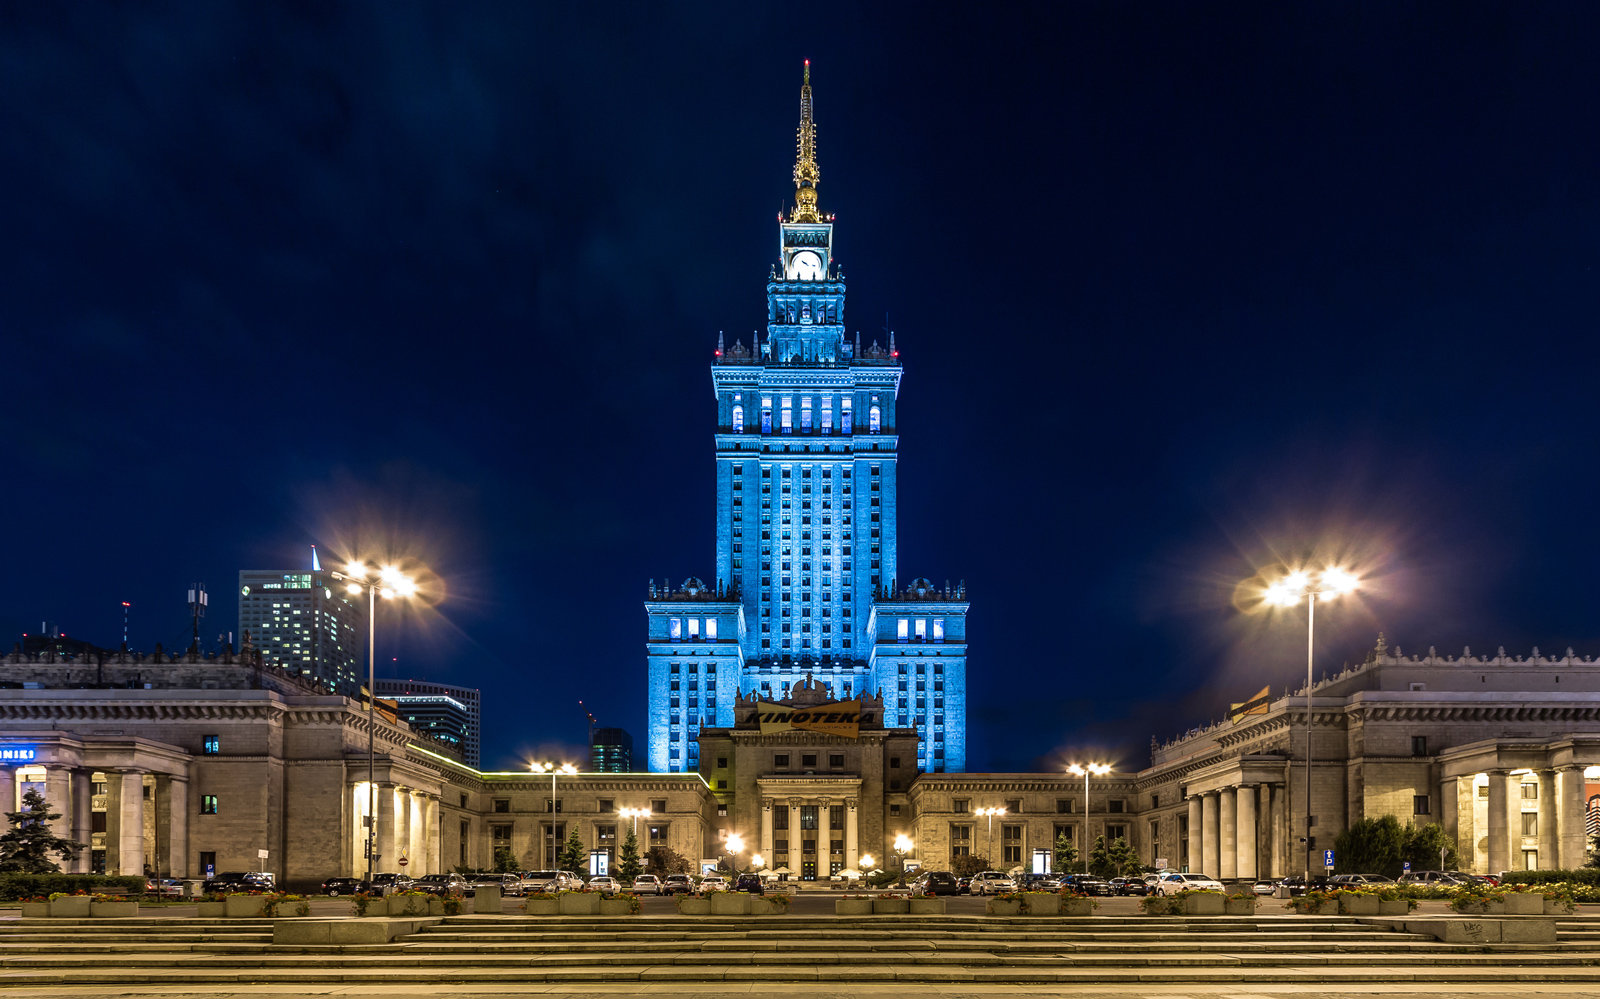 Warsaw at night.